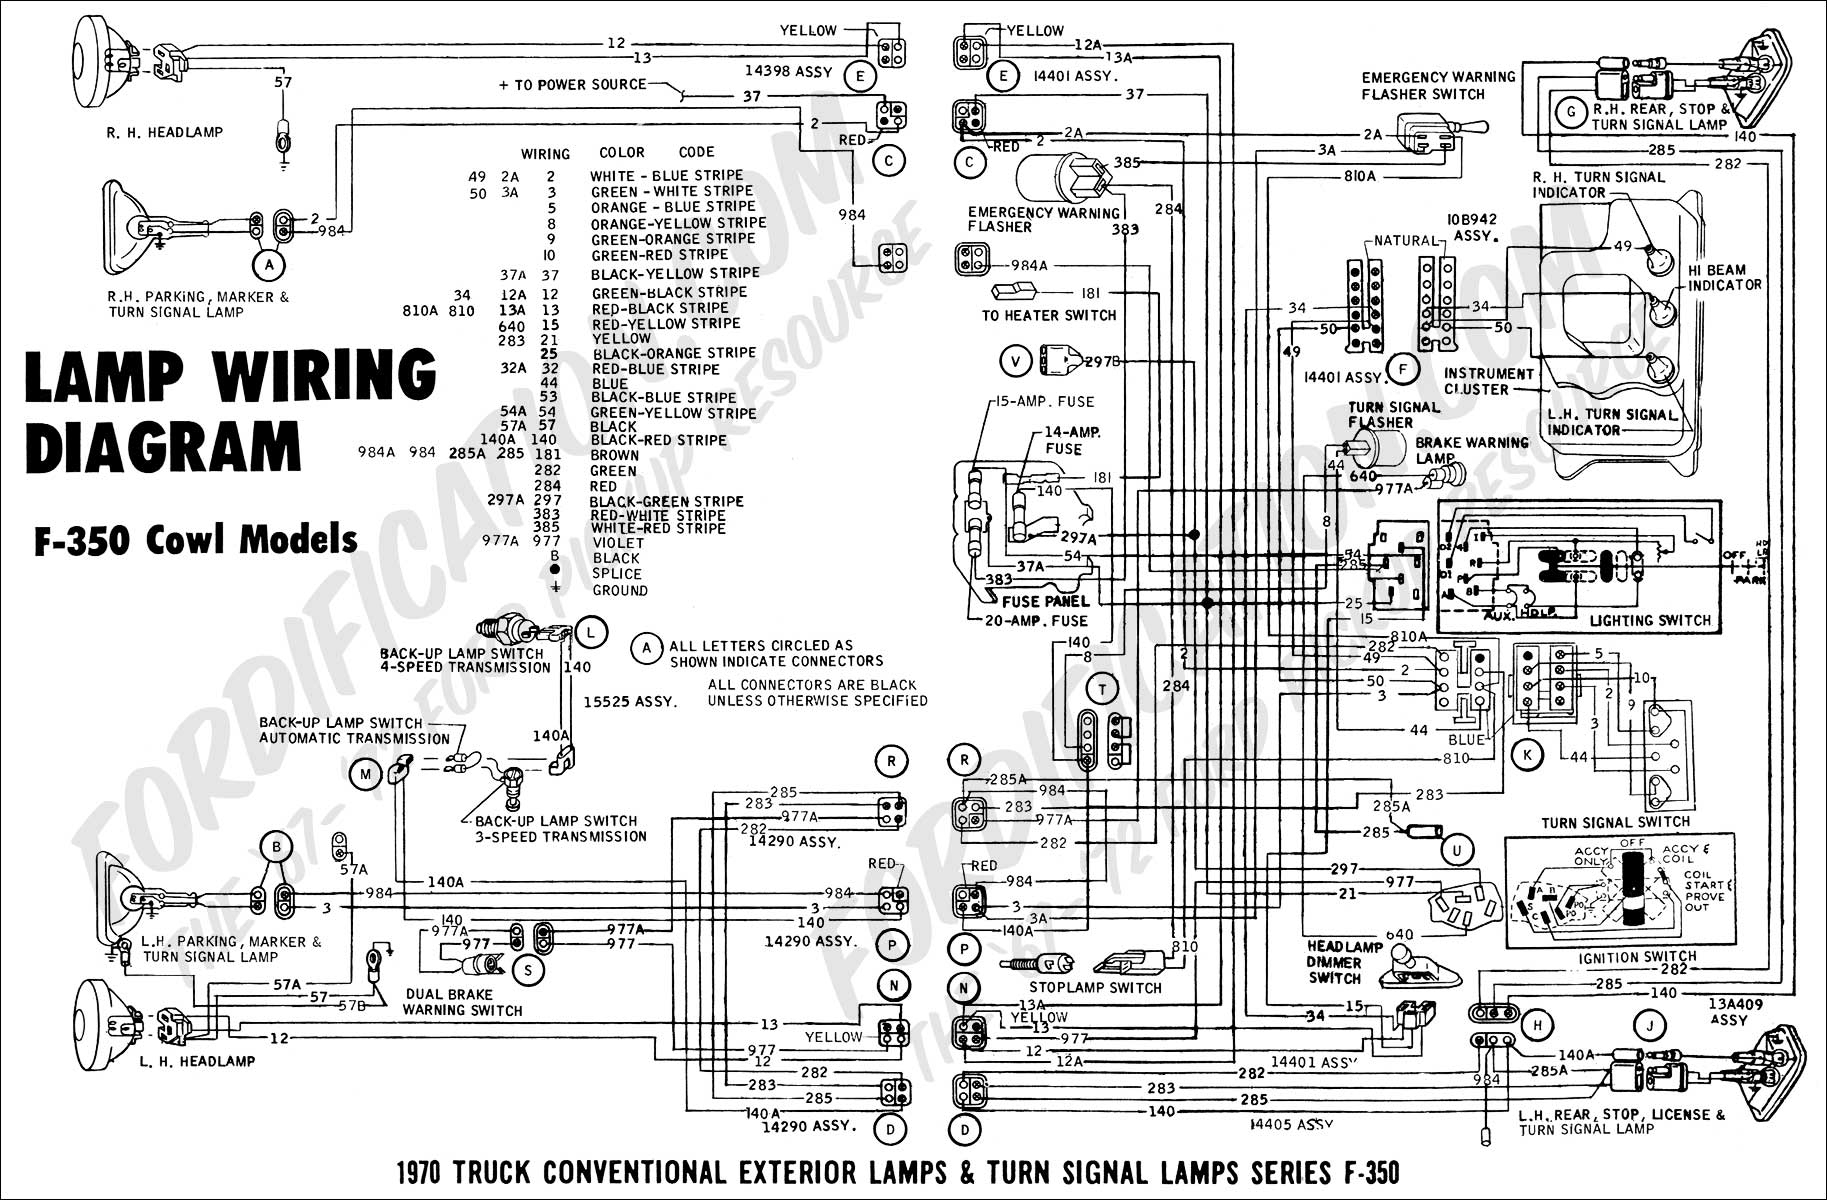 2002 Ford F250 Trailer Wiring Diagram | Trailer Wiring Diagram